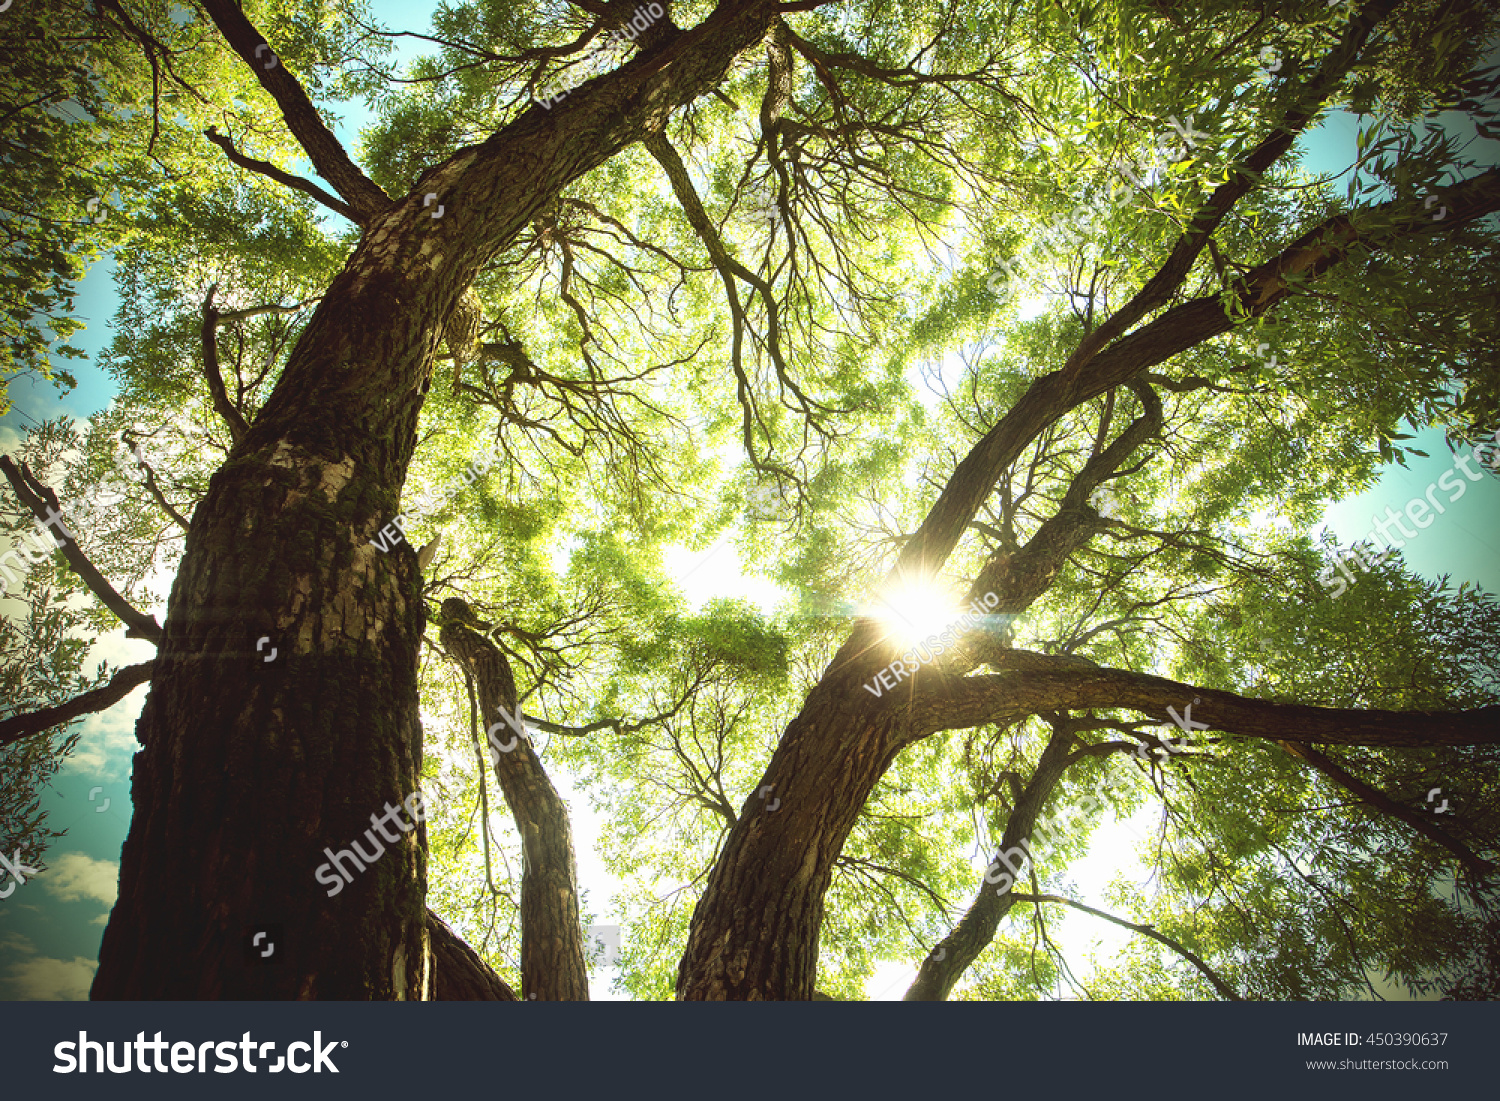 Beams Sun Green Tree Branches Nature Stock Photo (Royalty Free ...